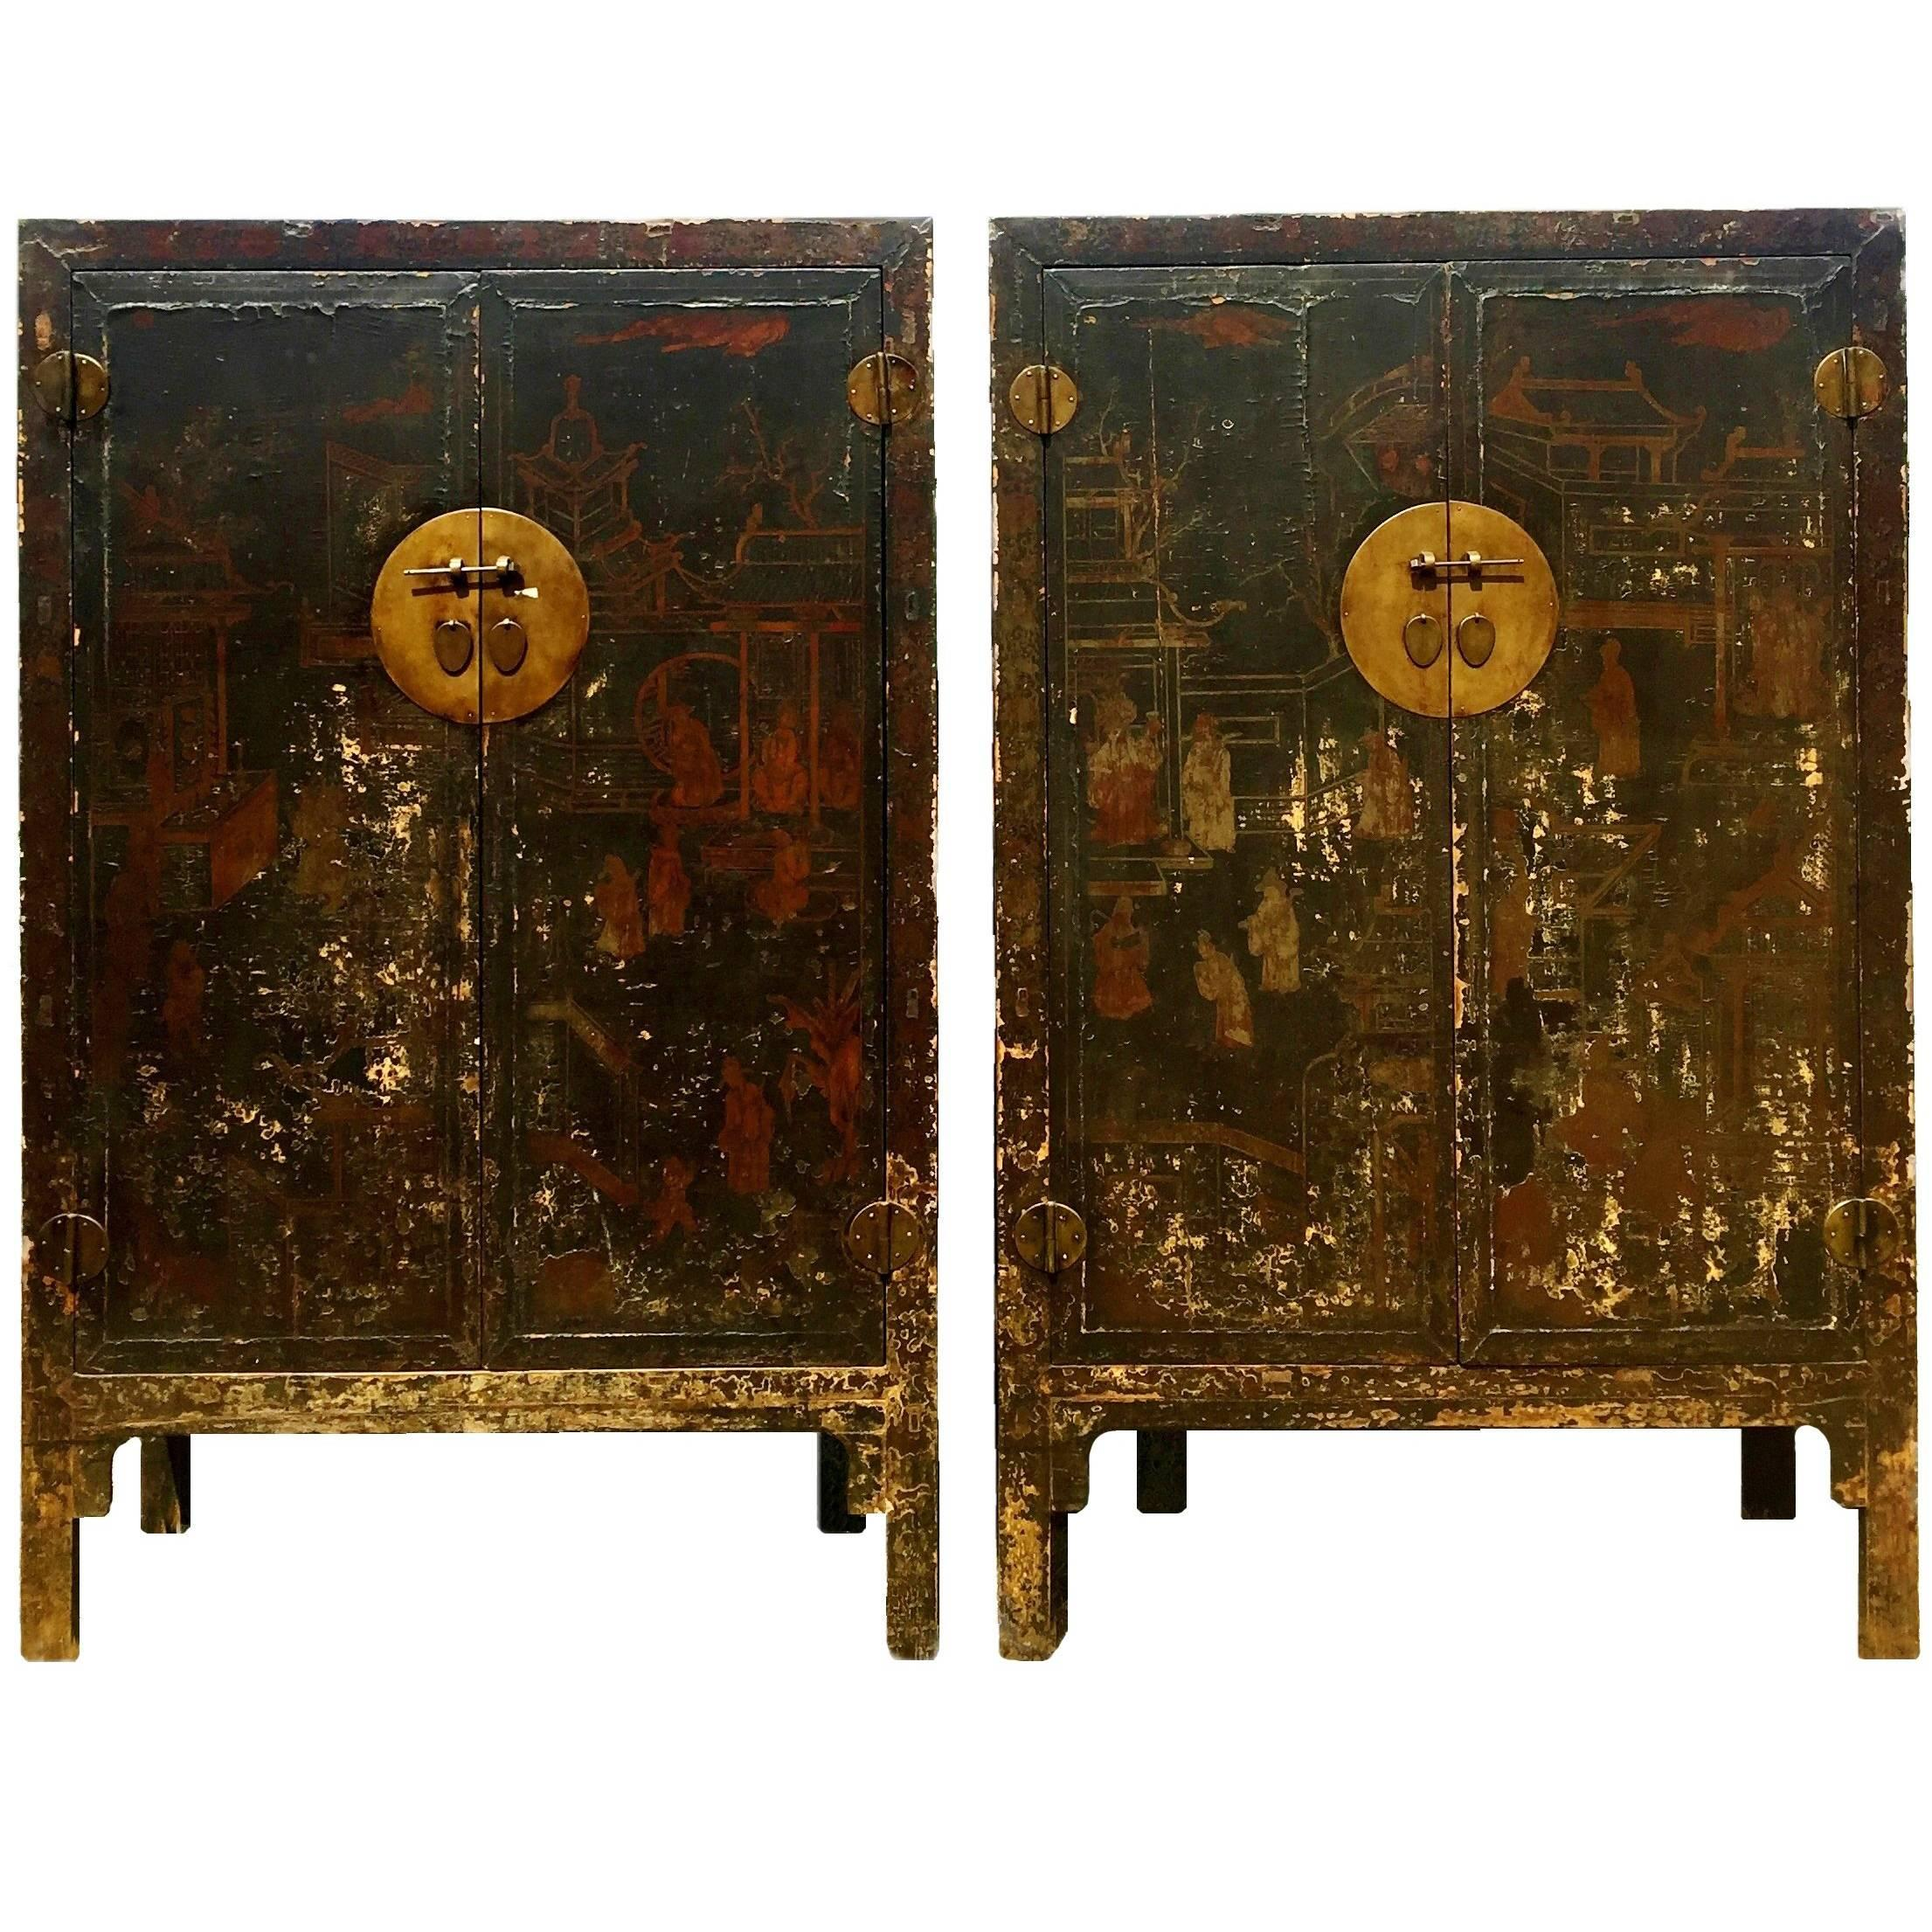 Pair Of 19th Century Black Lacquered Chinese Cabinets In Original Condition  For Sale